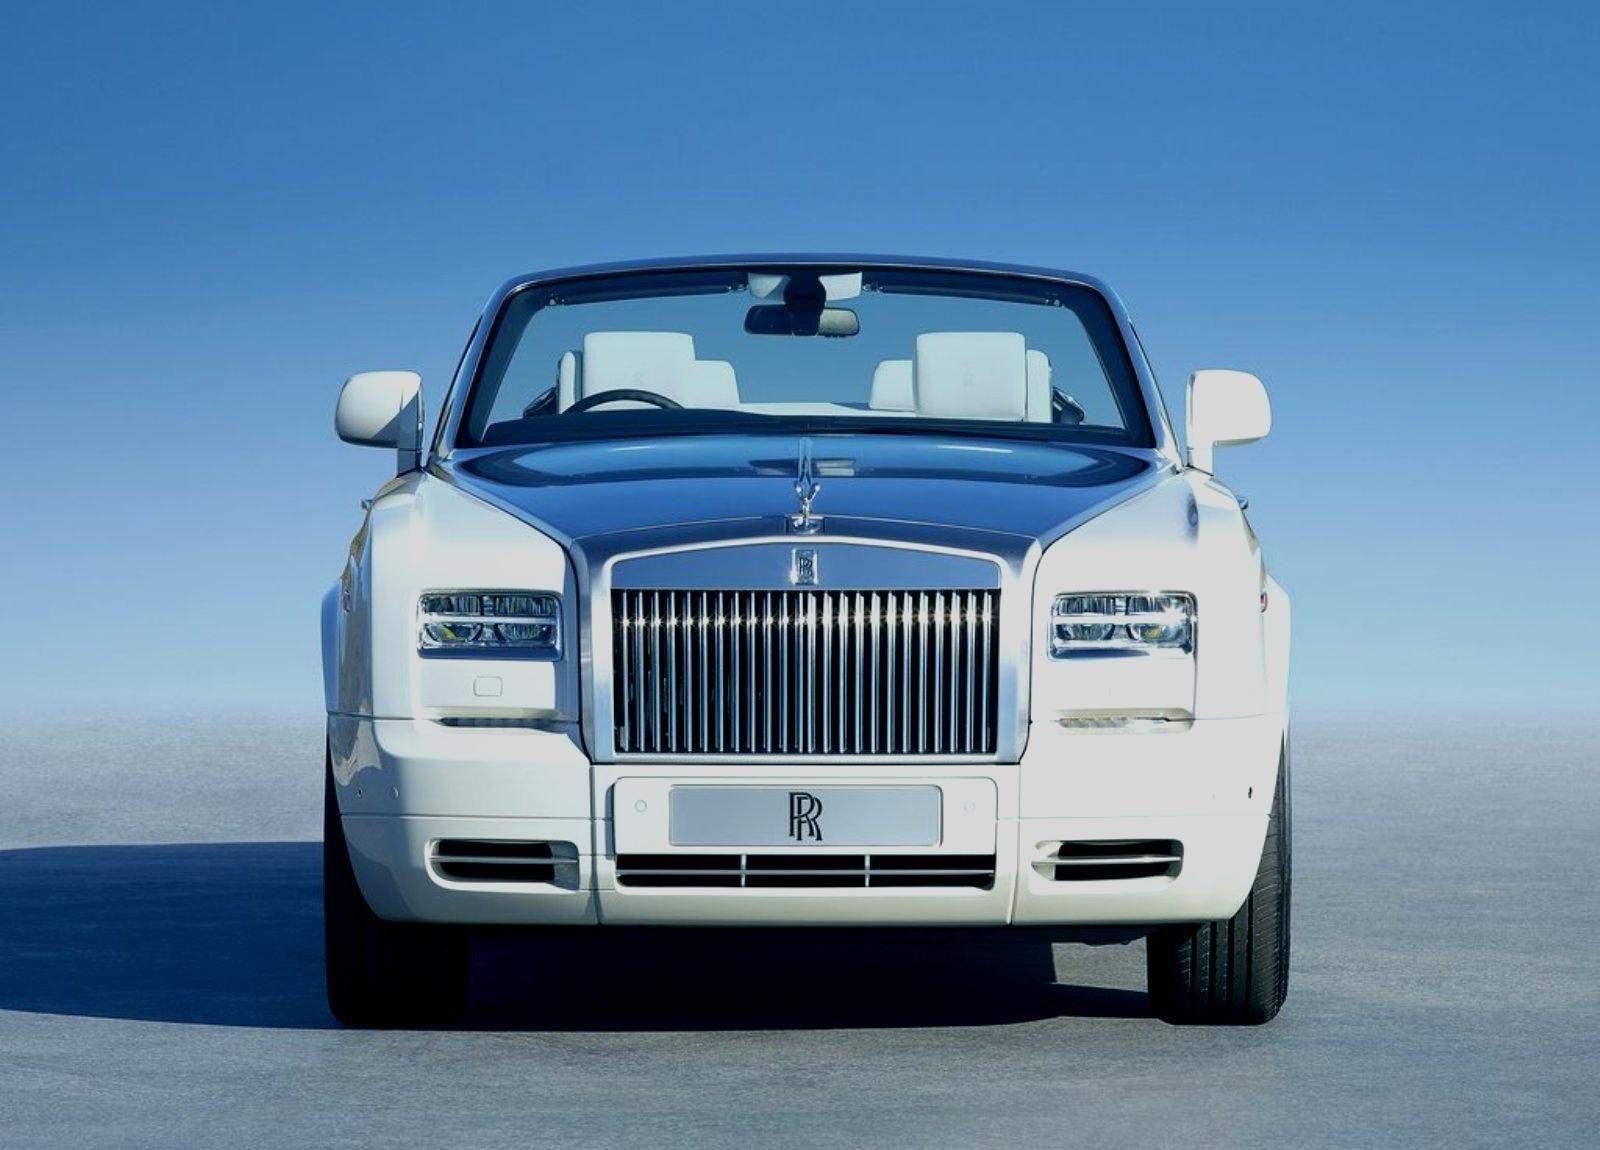 2016 Rolls Royce Phantom Drophead Coupe Wallpapers HD Photos